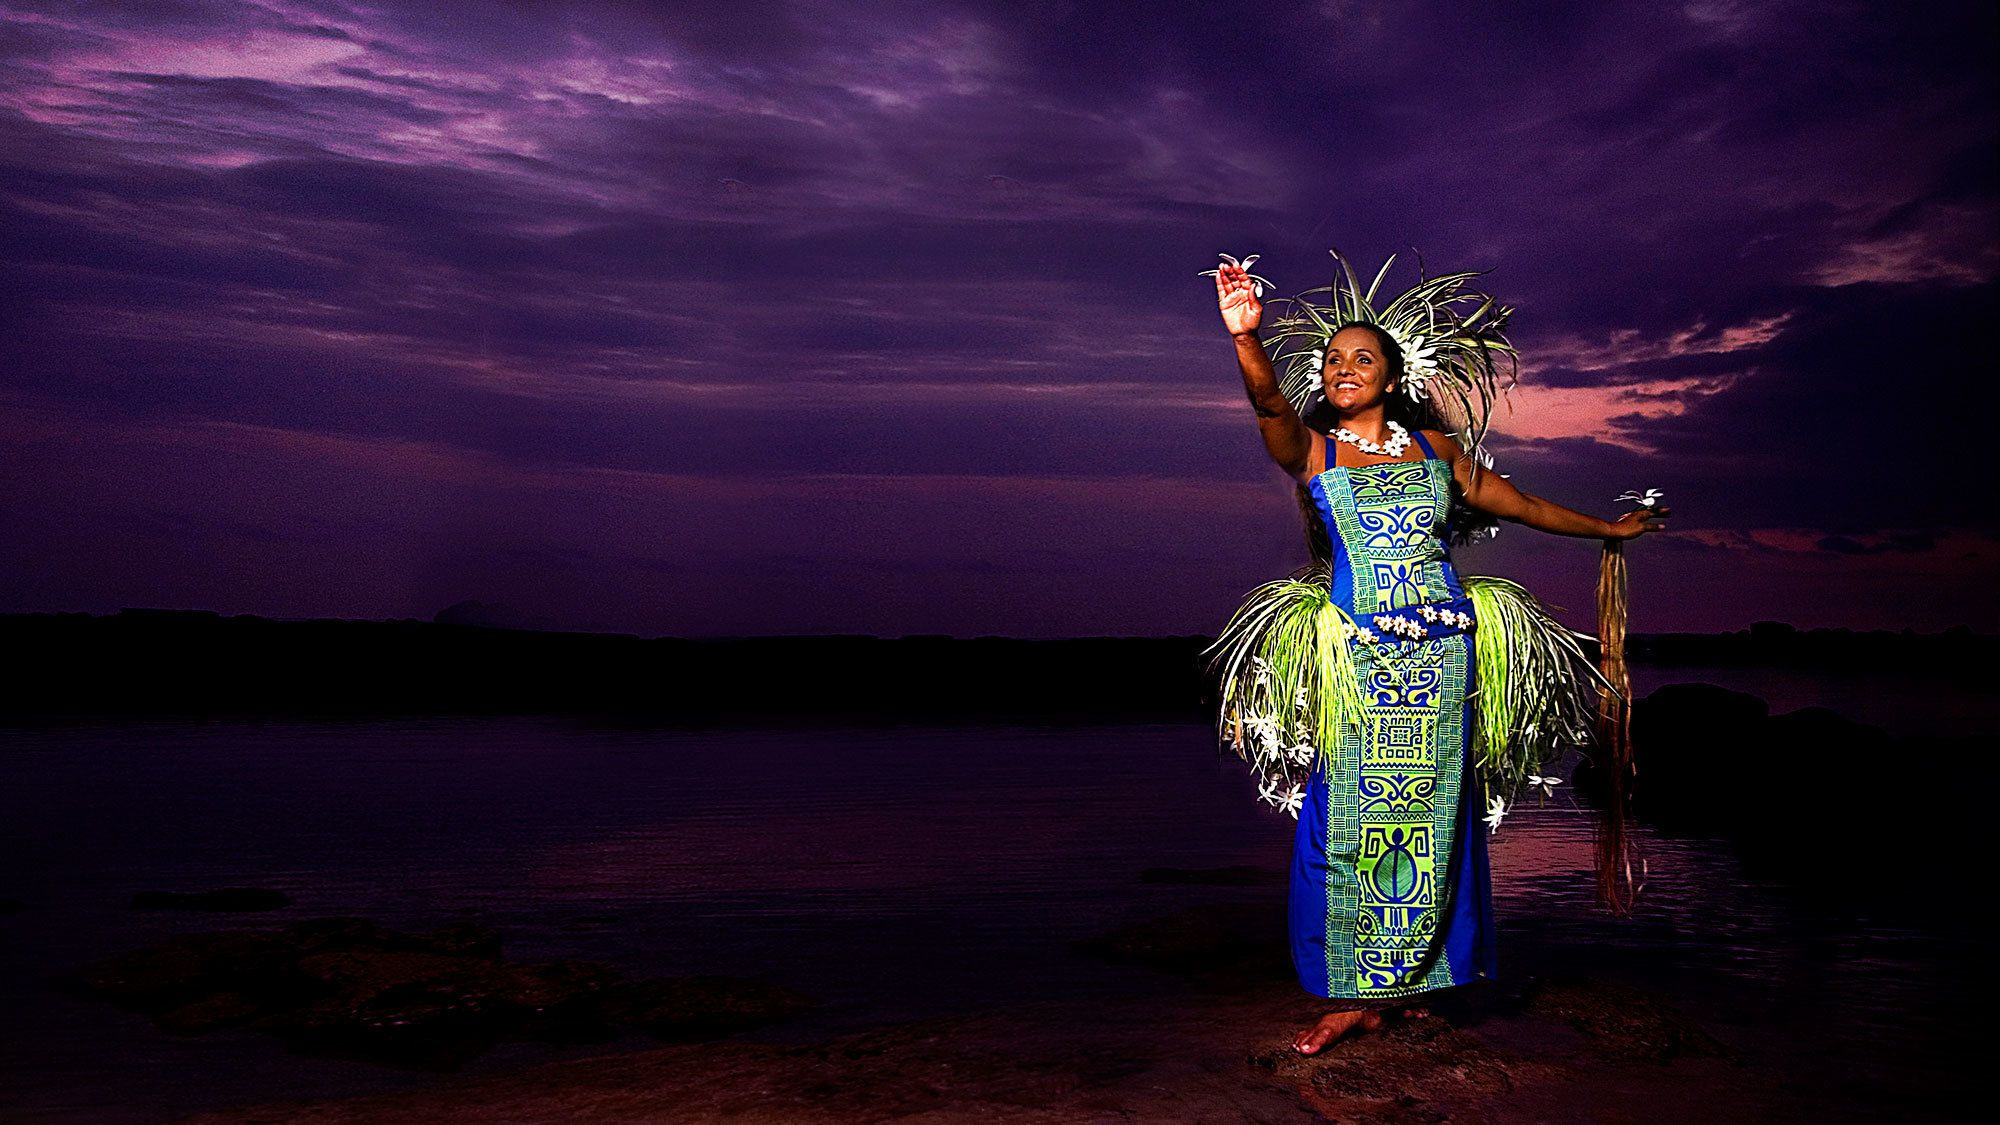 woman performer standin with bird on one hand and reaching out with the other in Haleo luau on the Big Island of Hawaii